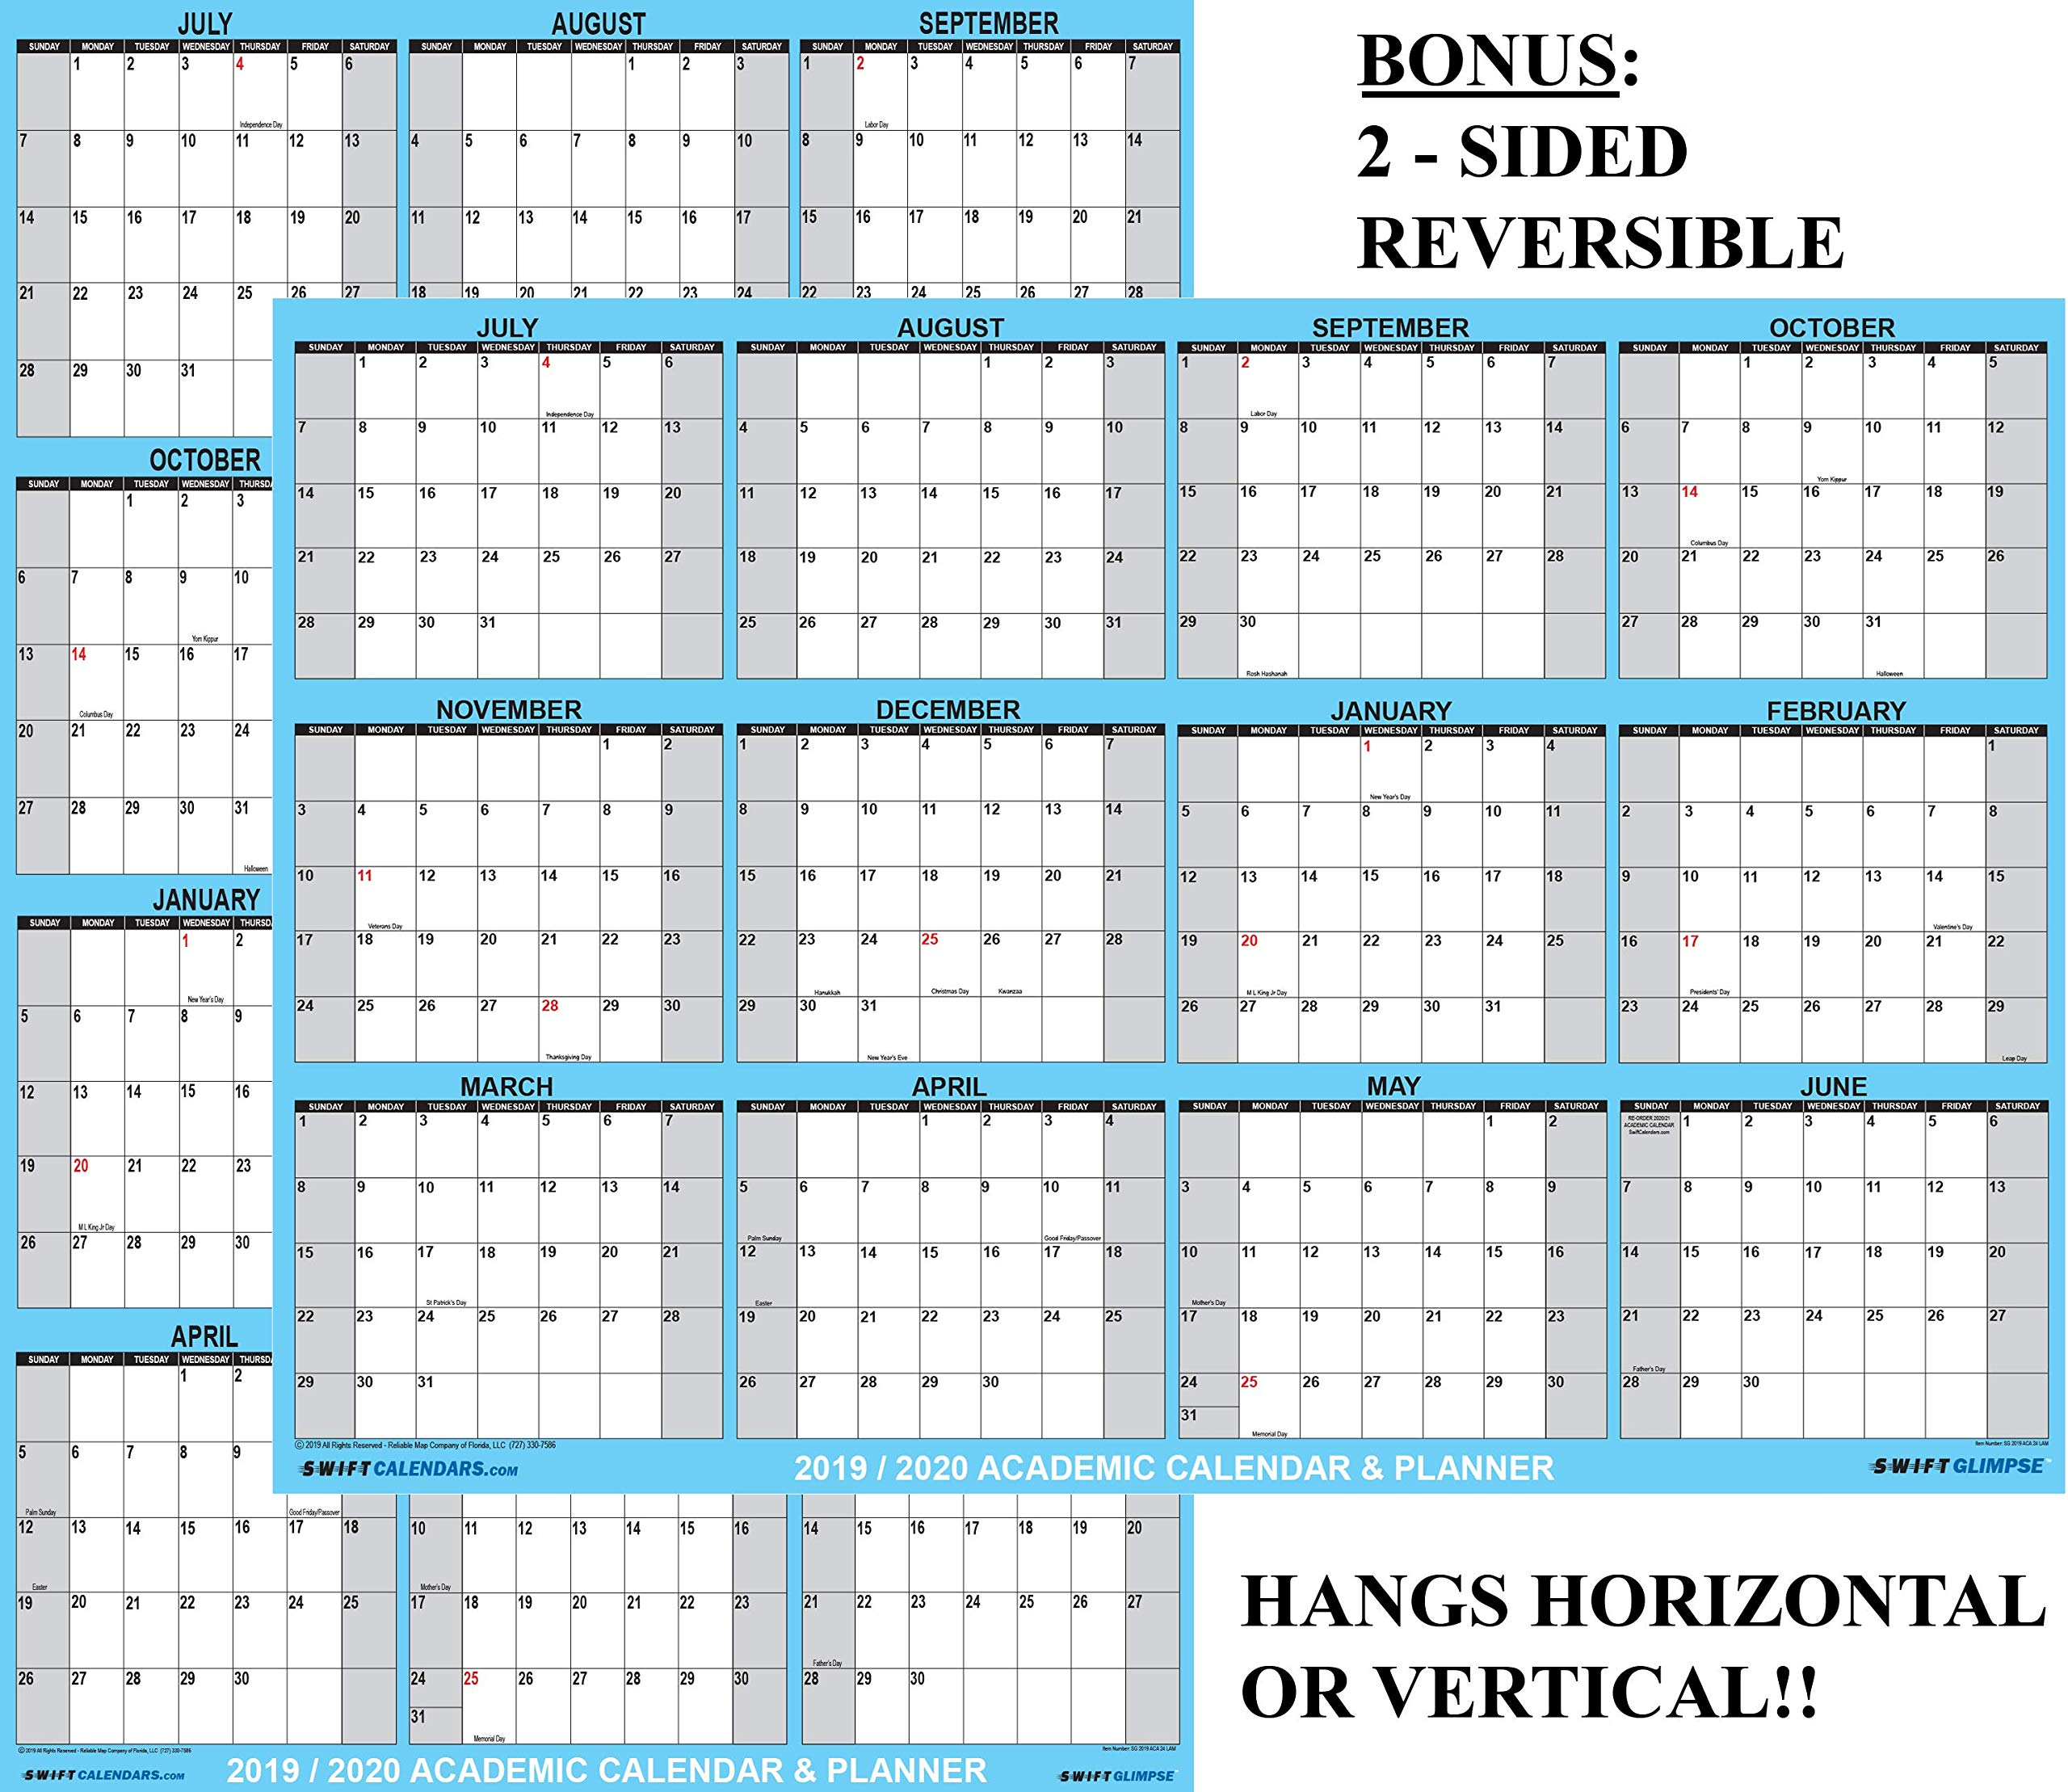 24x36 SwiftGlimpse 2019-2020 Academic Wall Calendar Erasable Large Jumbo Oversized Wet & Dry Erase Laminated 12 Month Planner, 2 Sided Vertical/Horizontal Reversible, June to July - Classic Blue by SwiftGlimpse